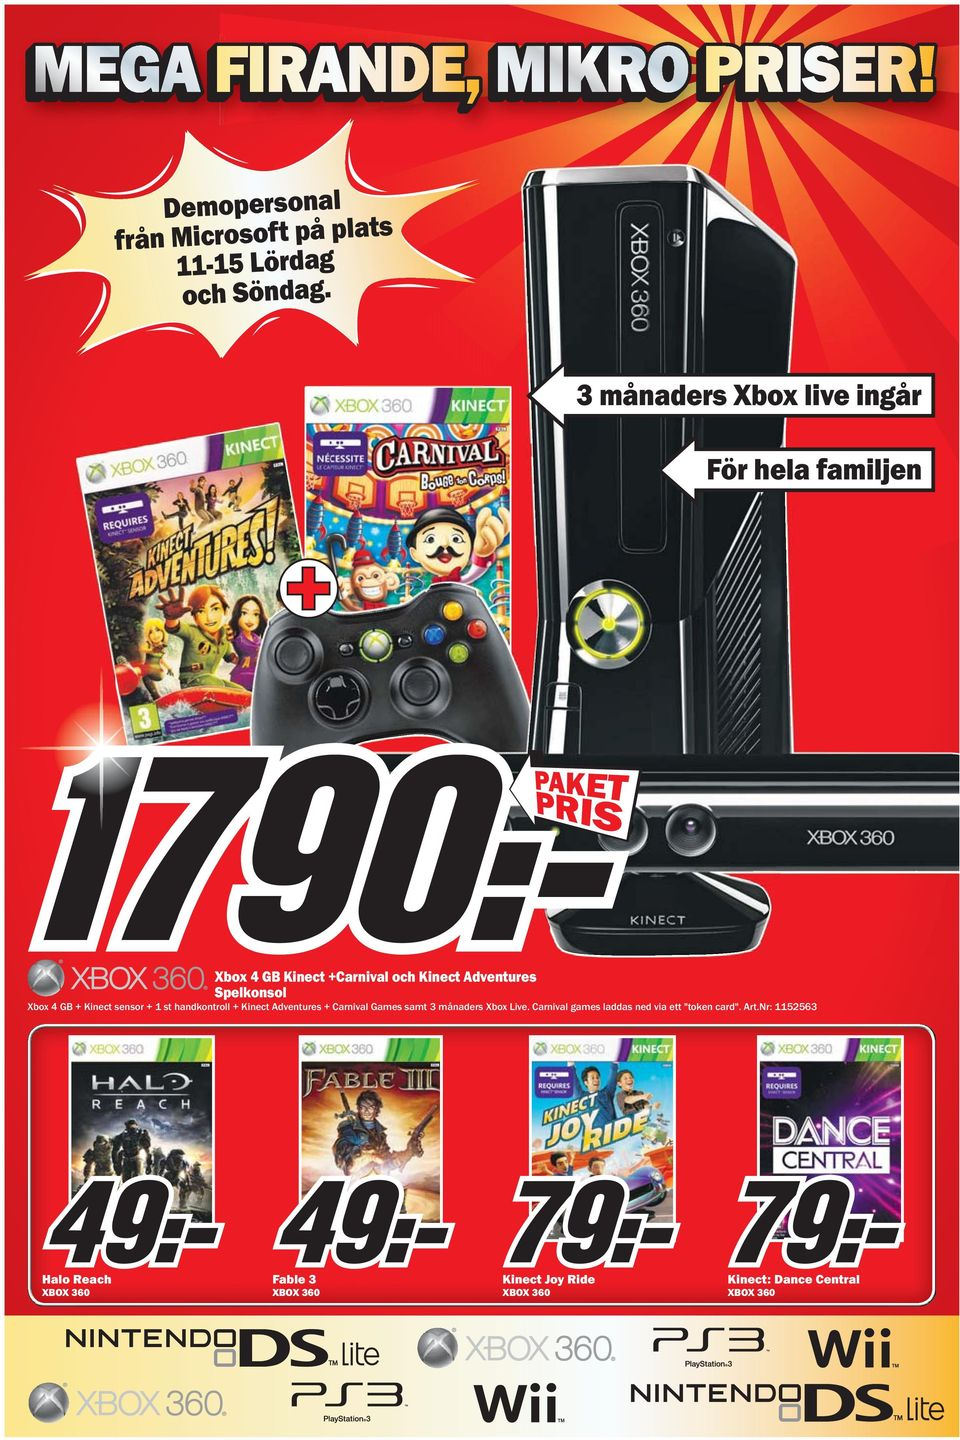 Xbox 4 GB + Kinect sensor + 1 st handkontroll + Kinect Adventures + Carnival Games samt 3 månaders Xbox Live.